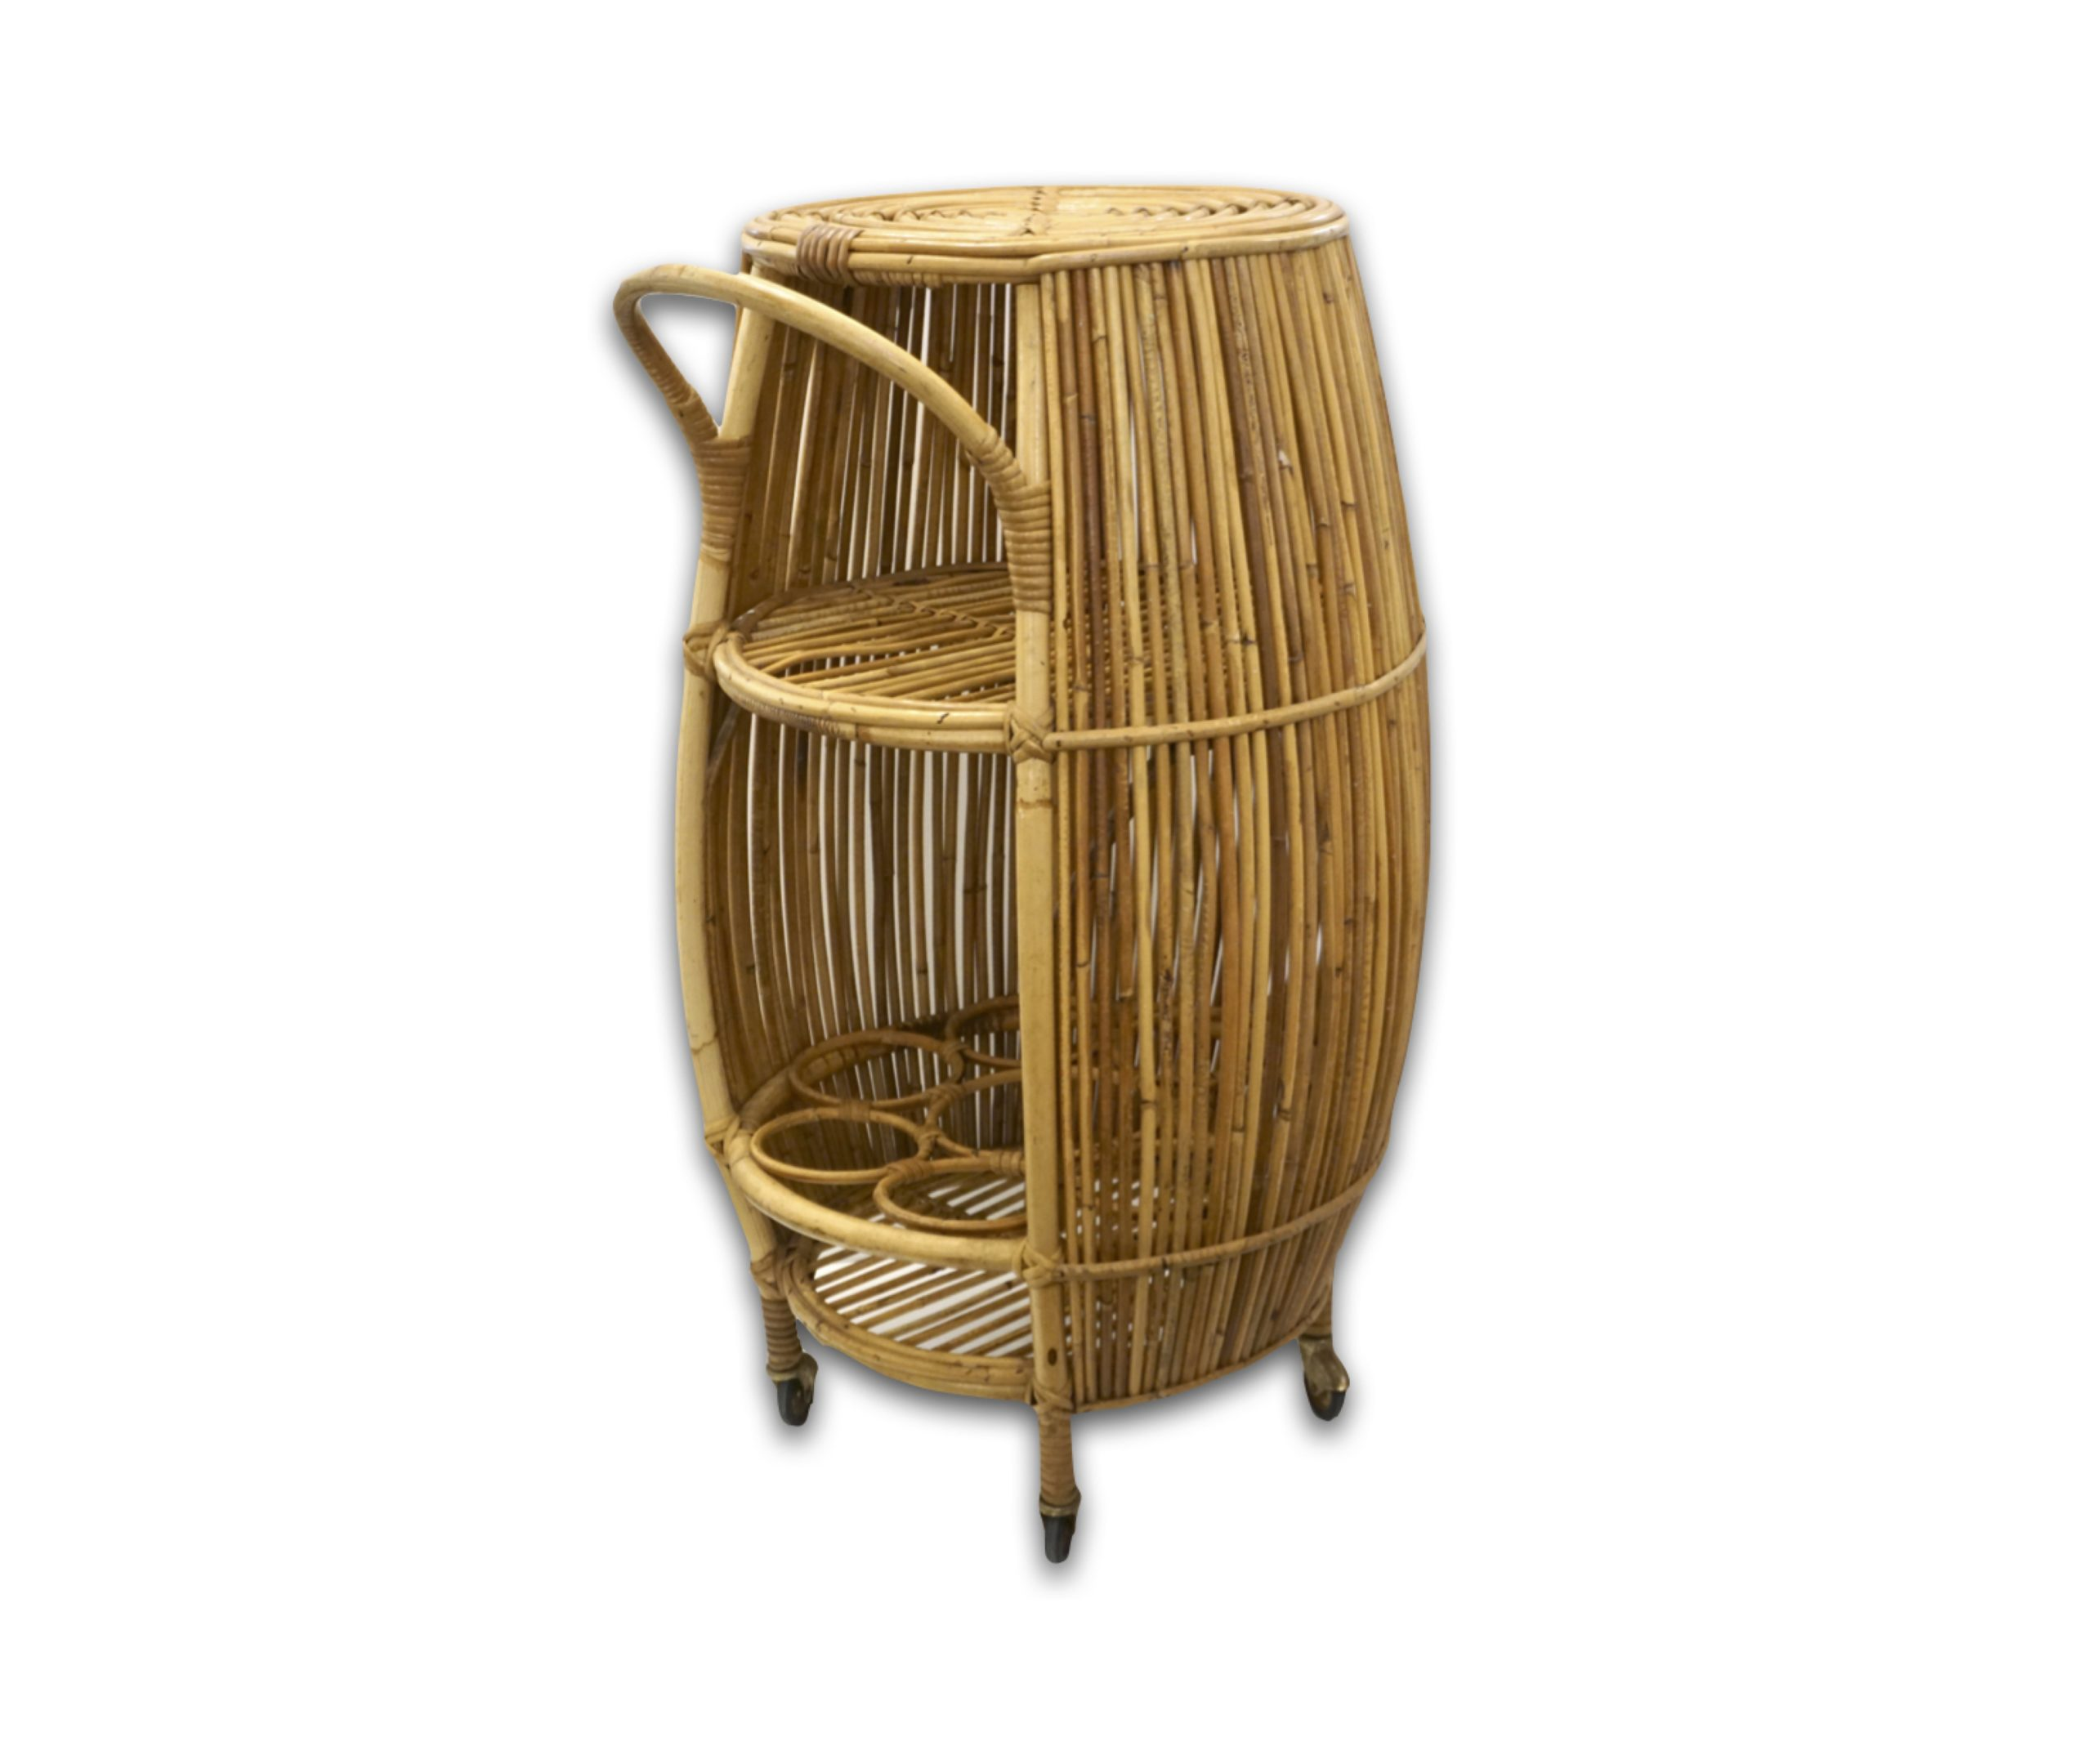 cosulich_interiors_and_antiques_products_new_york_design_bonacina_1950_italian_mid_century_modernnatural_rattan_cylindrical_bar_trolley_side-scaled-1